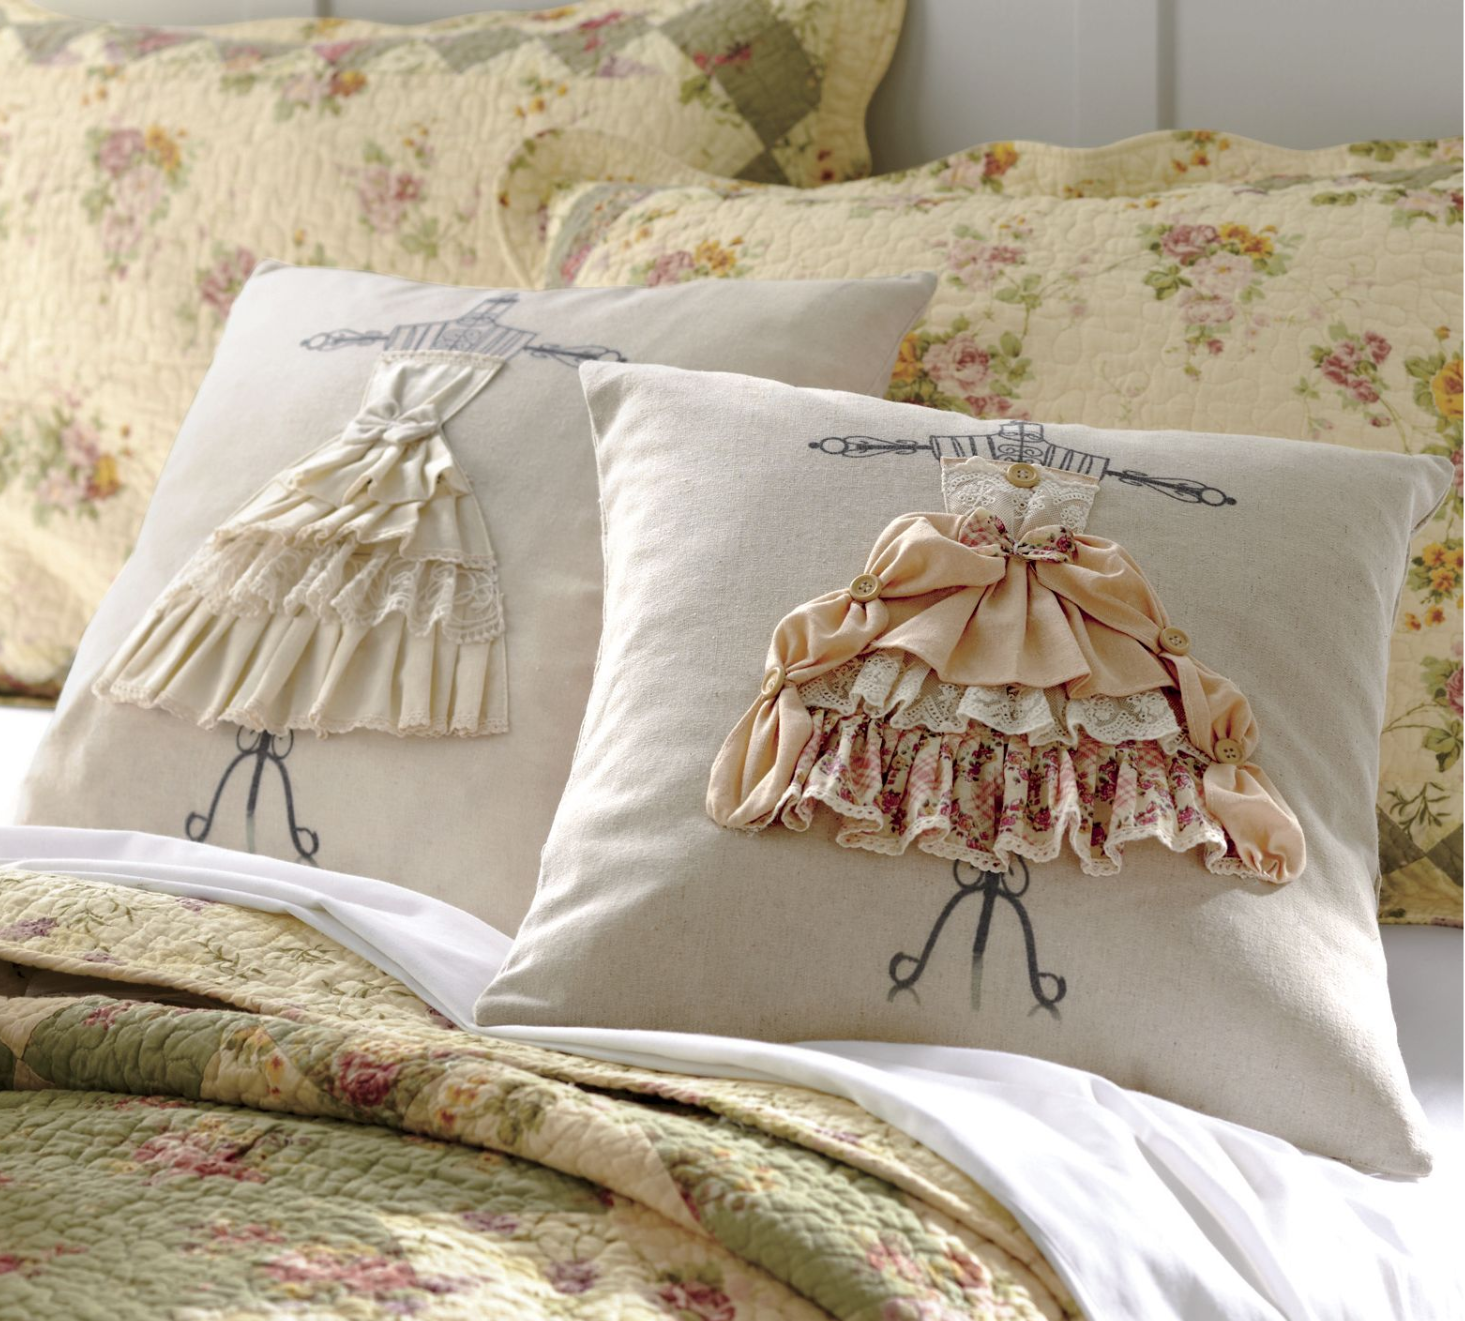 French Country Décor & Decorating Ideas for the Bedroom